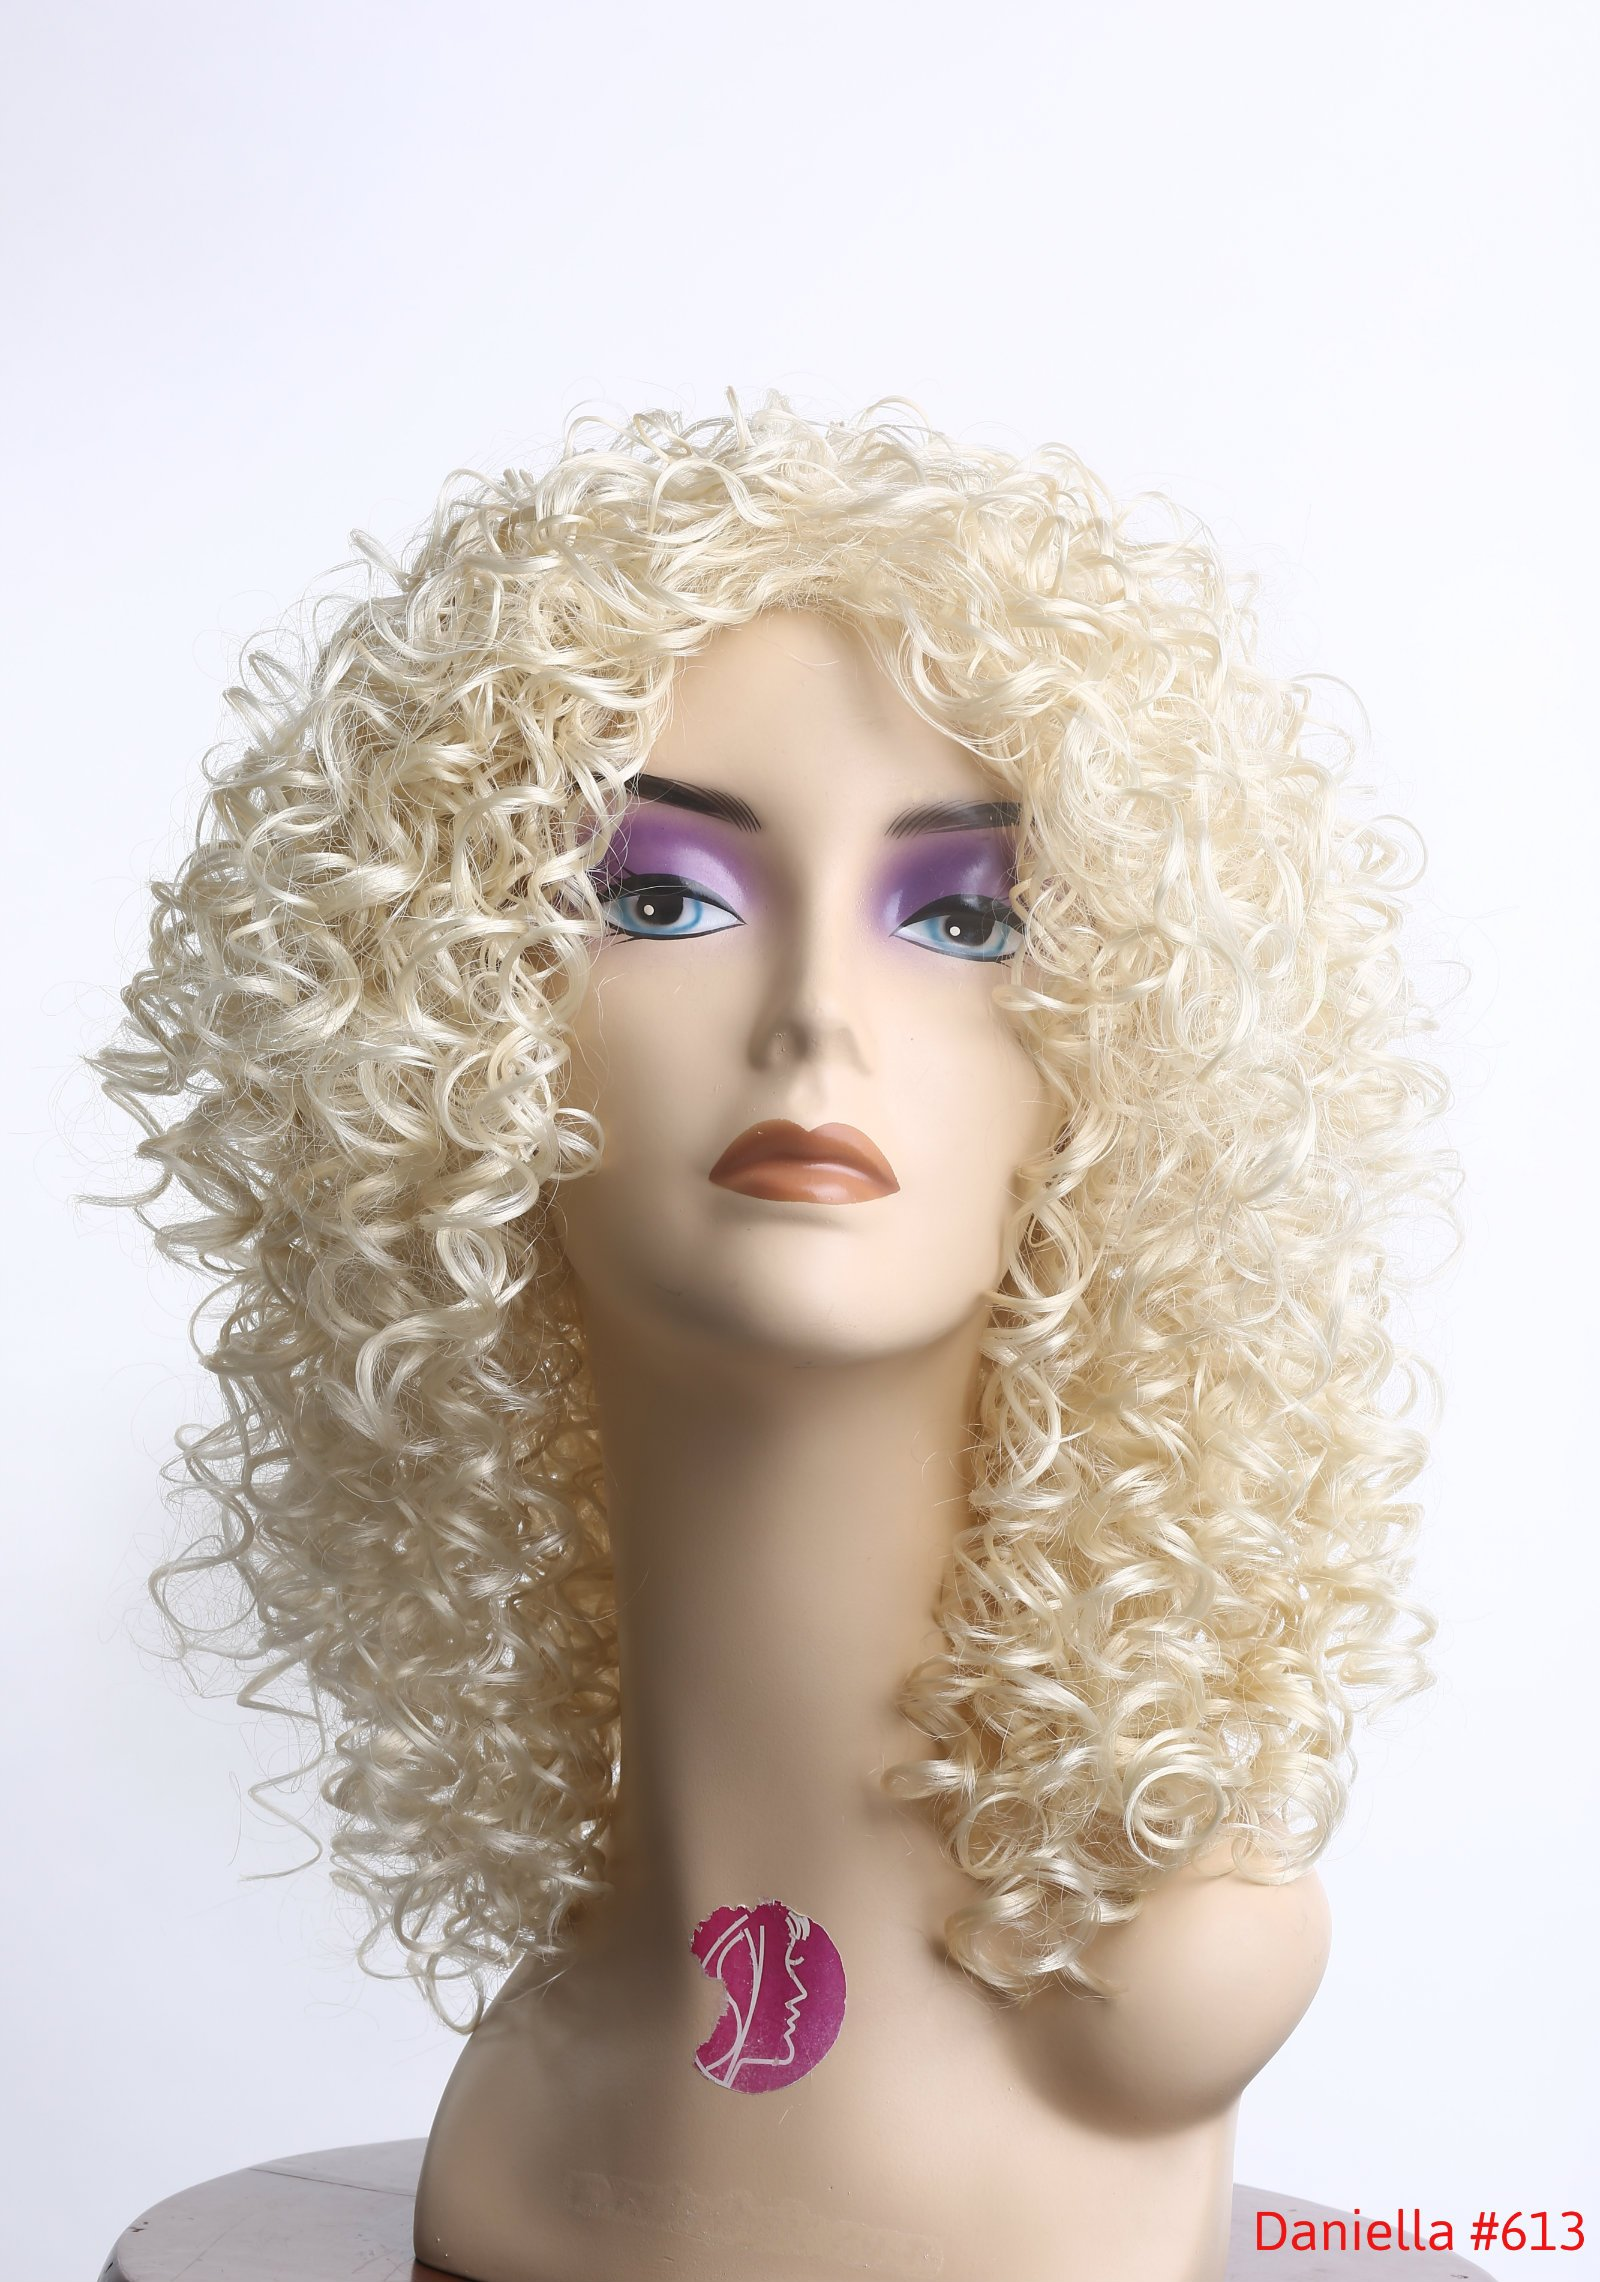 14'' Curly Wig Long Layered Light/Bleach/Patinum Blonde Looking Natural for Regular Wear or Party Cosplay Heat Friendly Fire Resistant Kanekalon (Bonus: 2 Wig Caps Provided) by Natural look